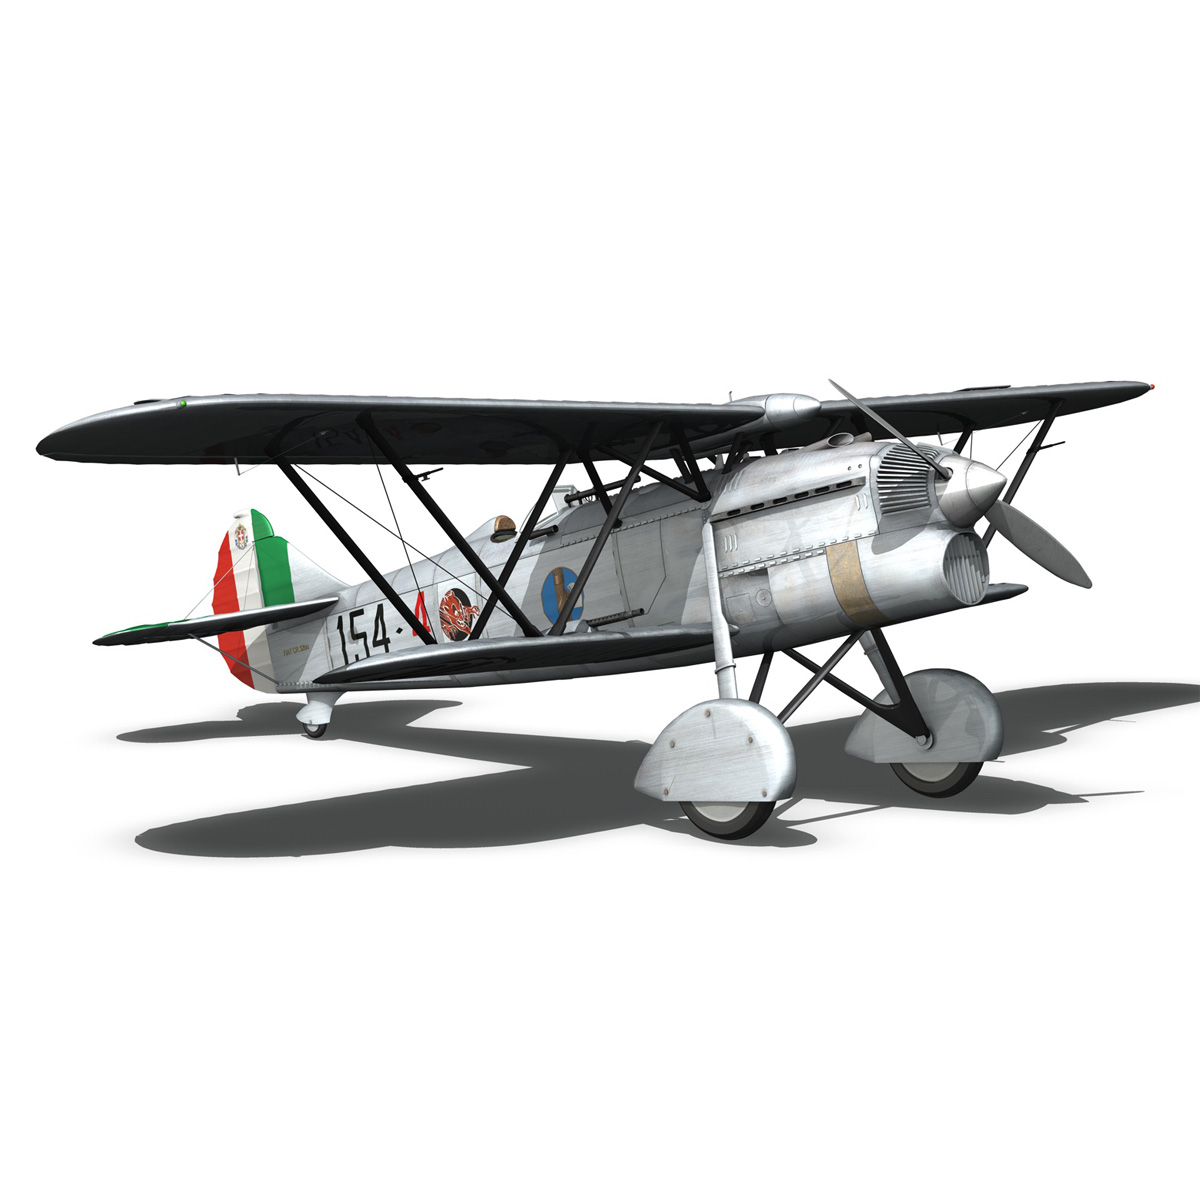 fiat cr.32 – italy airforce – 154 squadriglia 3d model fbx c4d lwo obj 268141